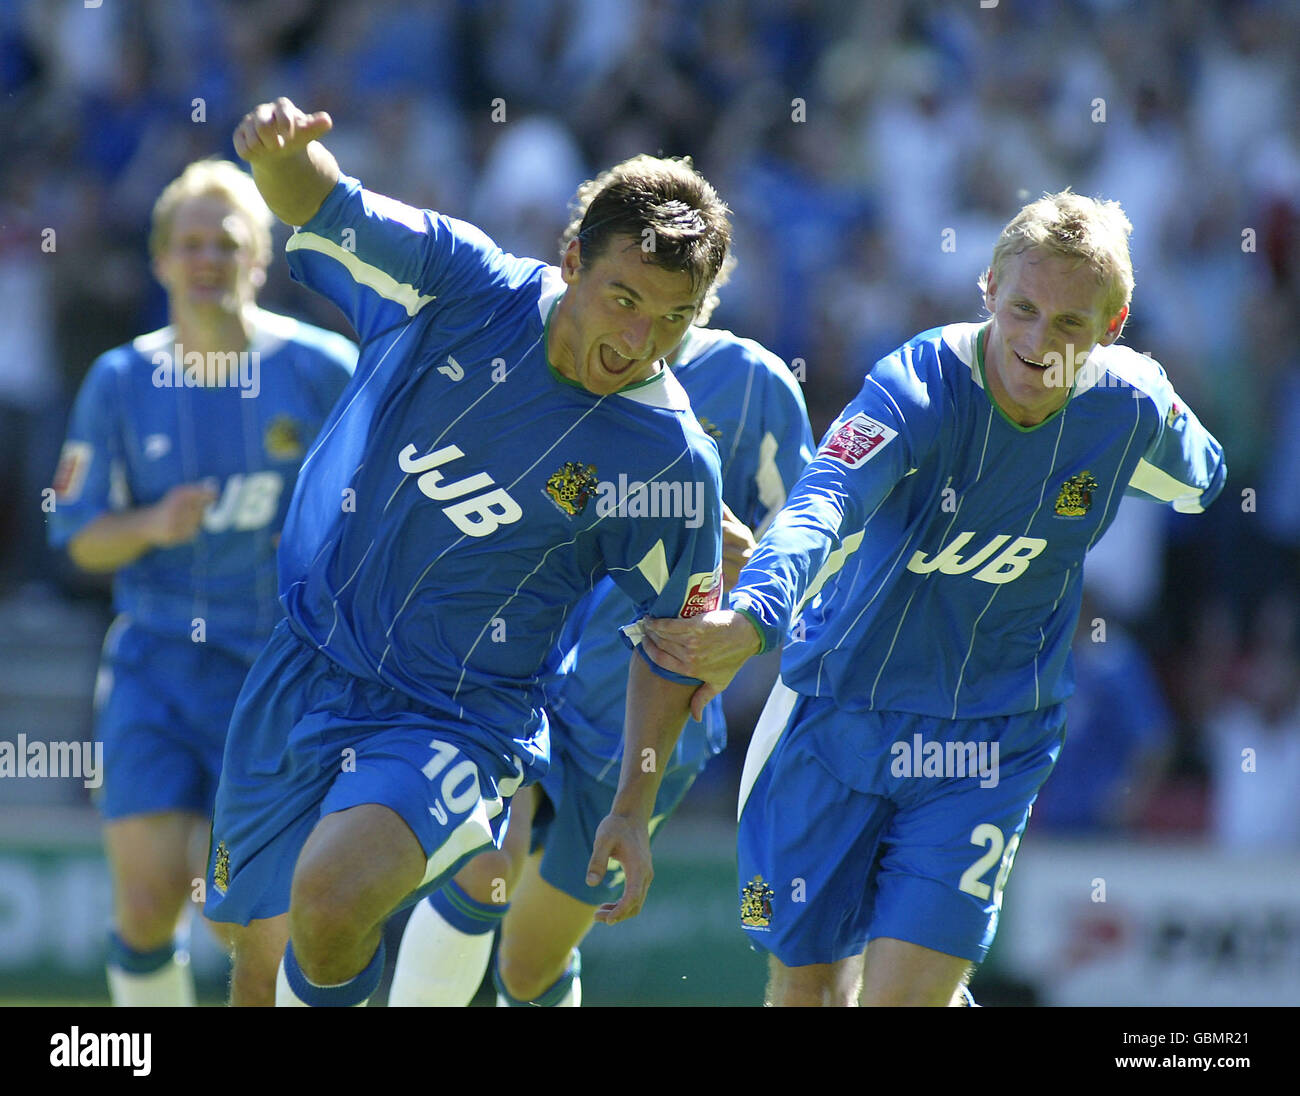 Soccer - Coca-Cola Football League Championship - Wigan Athletic v Nottingham Forest - Stock Image